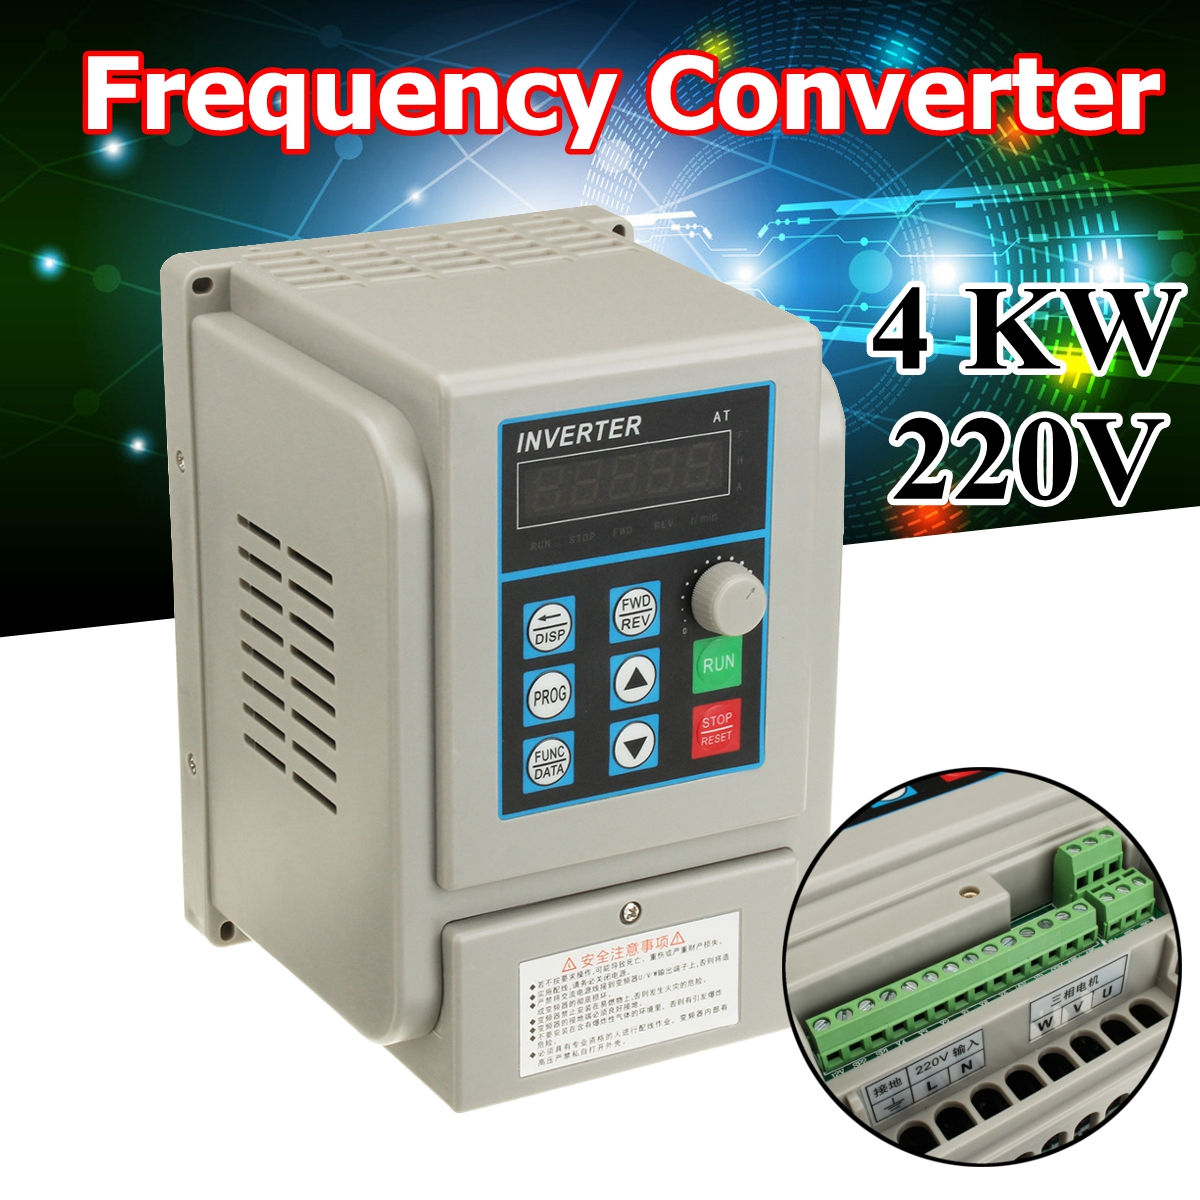 AC 220V Frequency Converter 4KW Variable Frequency Drive Converter VFD Speed Controller Converter цена